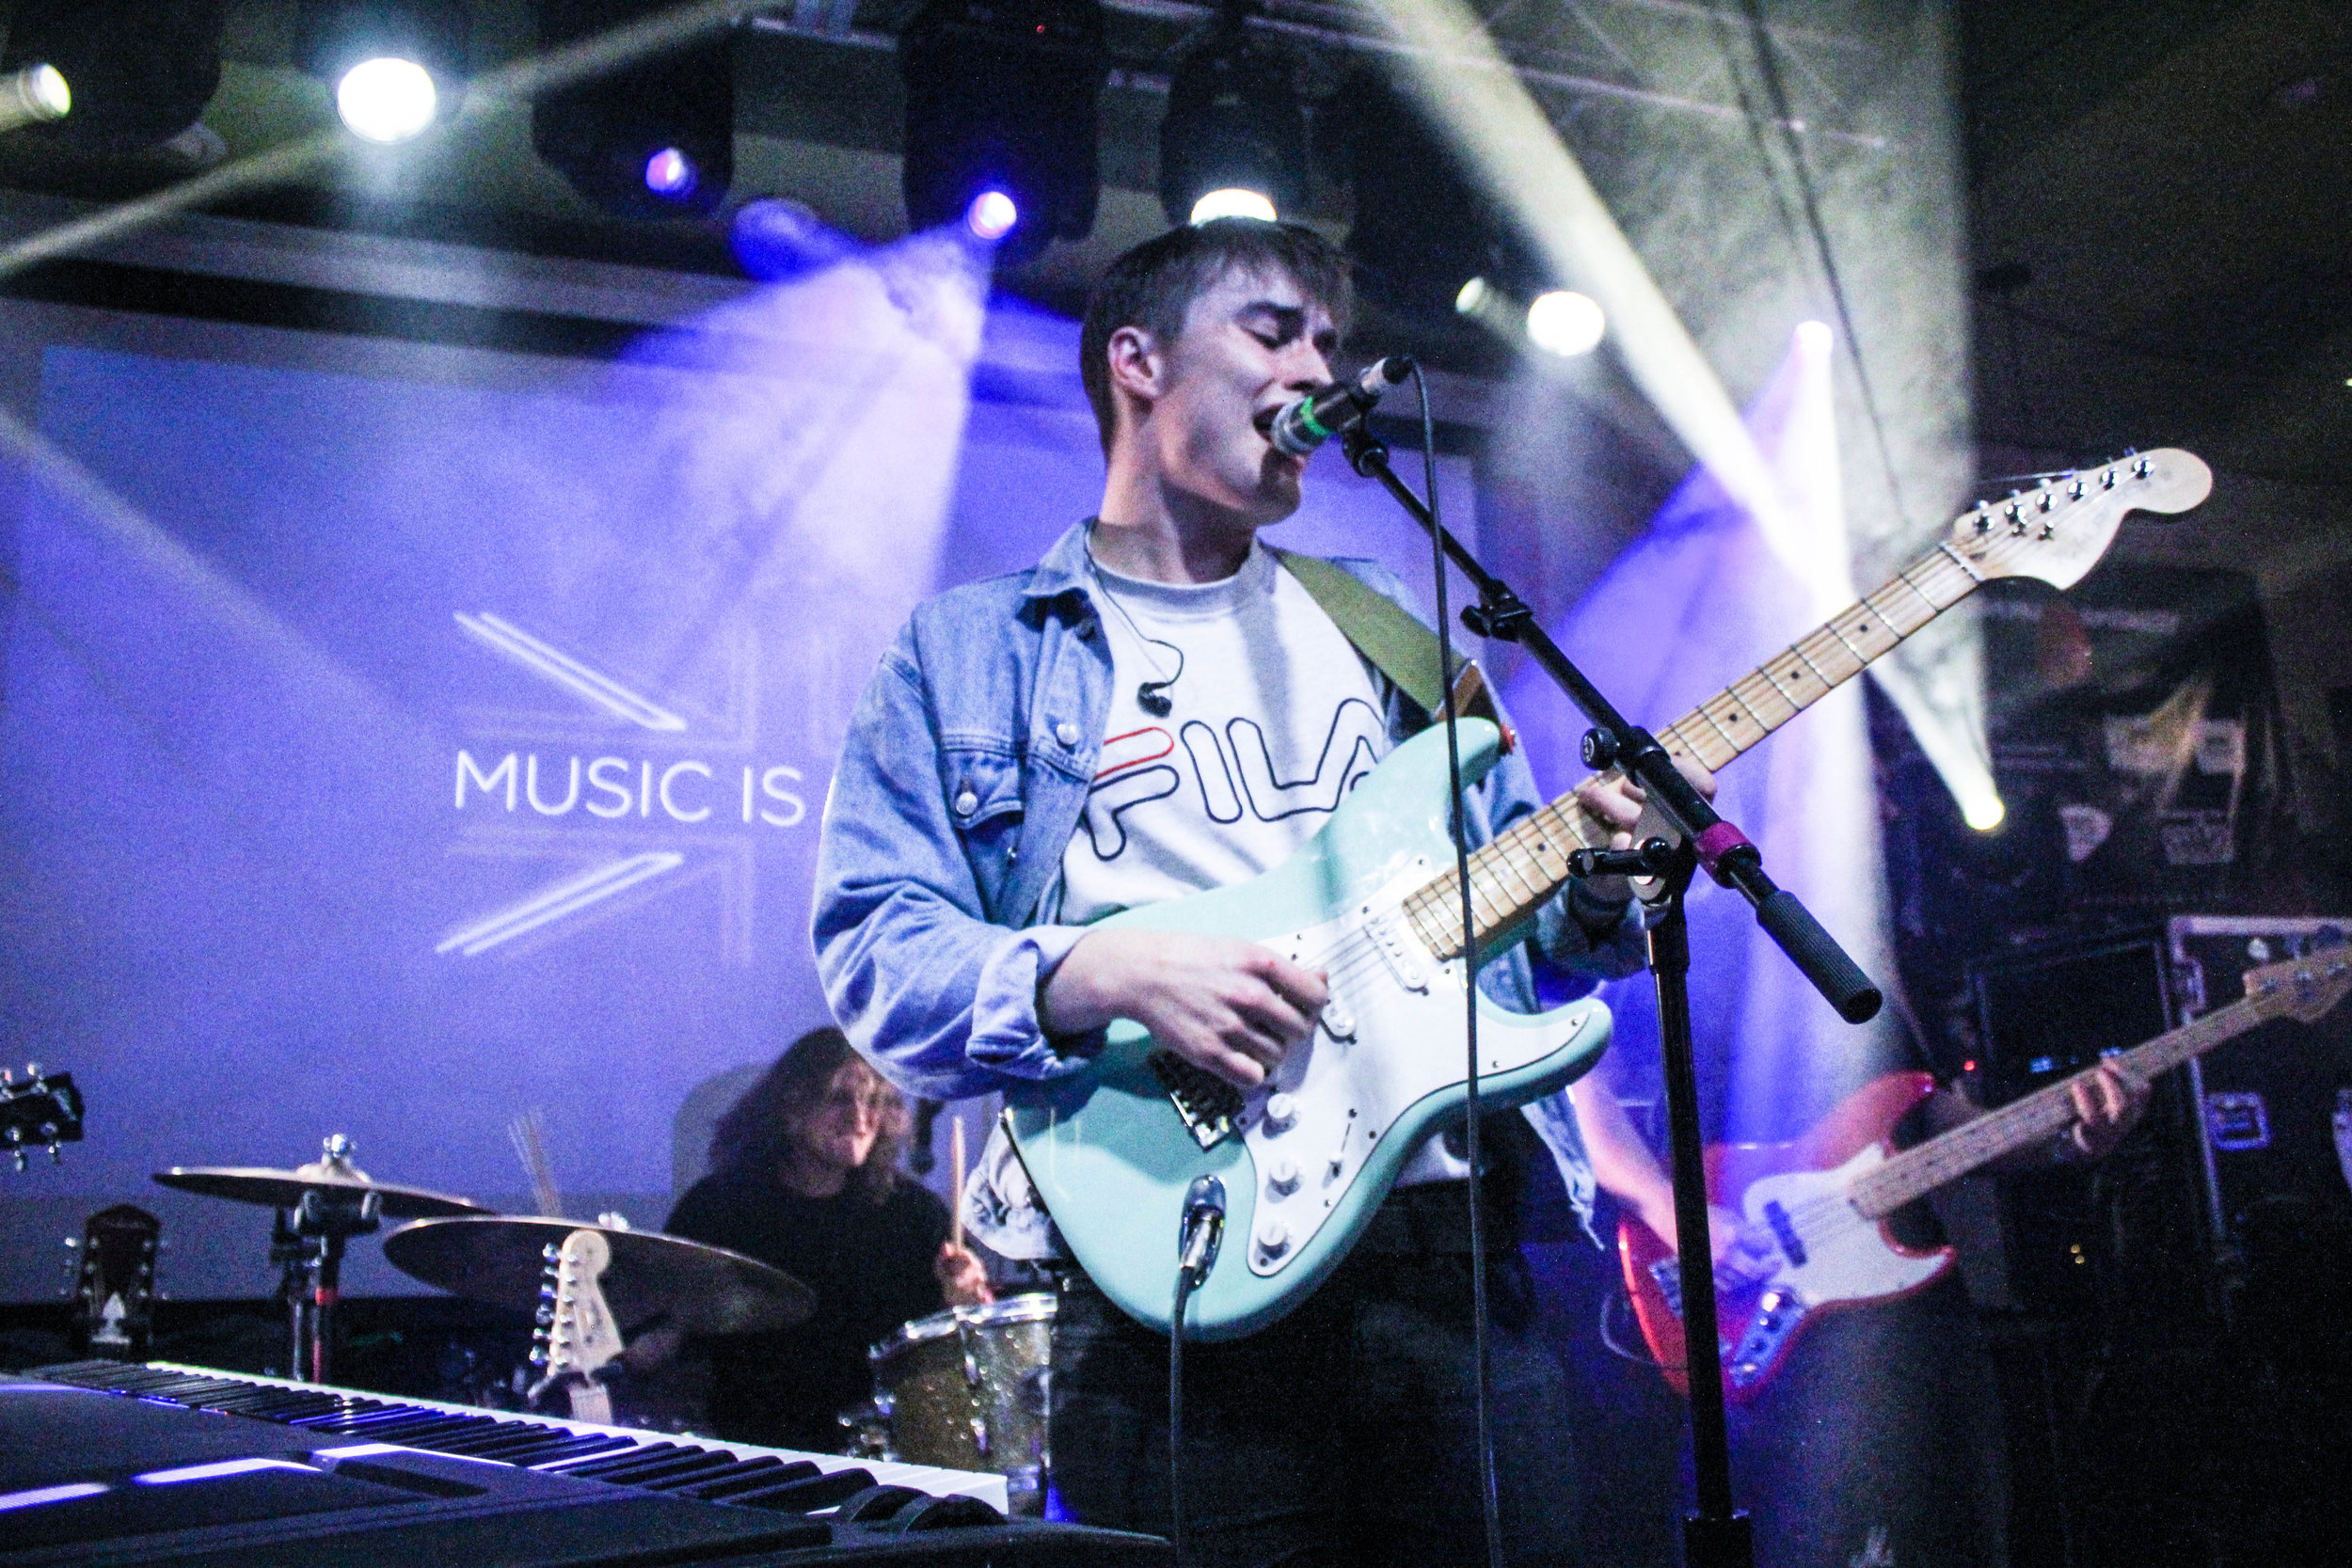 Sam Fender at SXSW - Photo © Concentus Music - Reproduction without permission not permitted